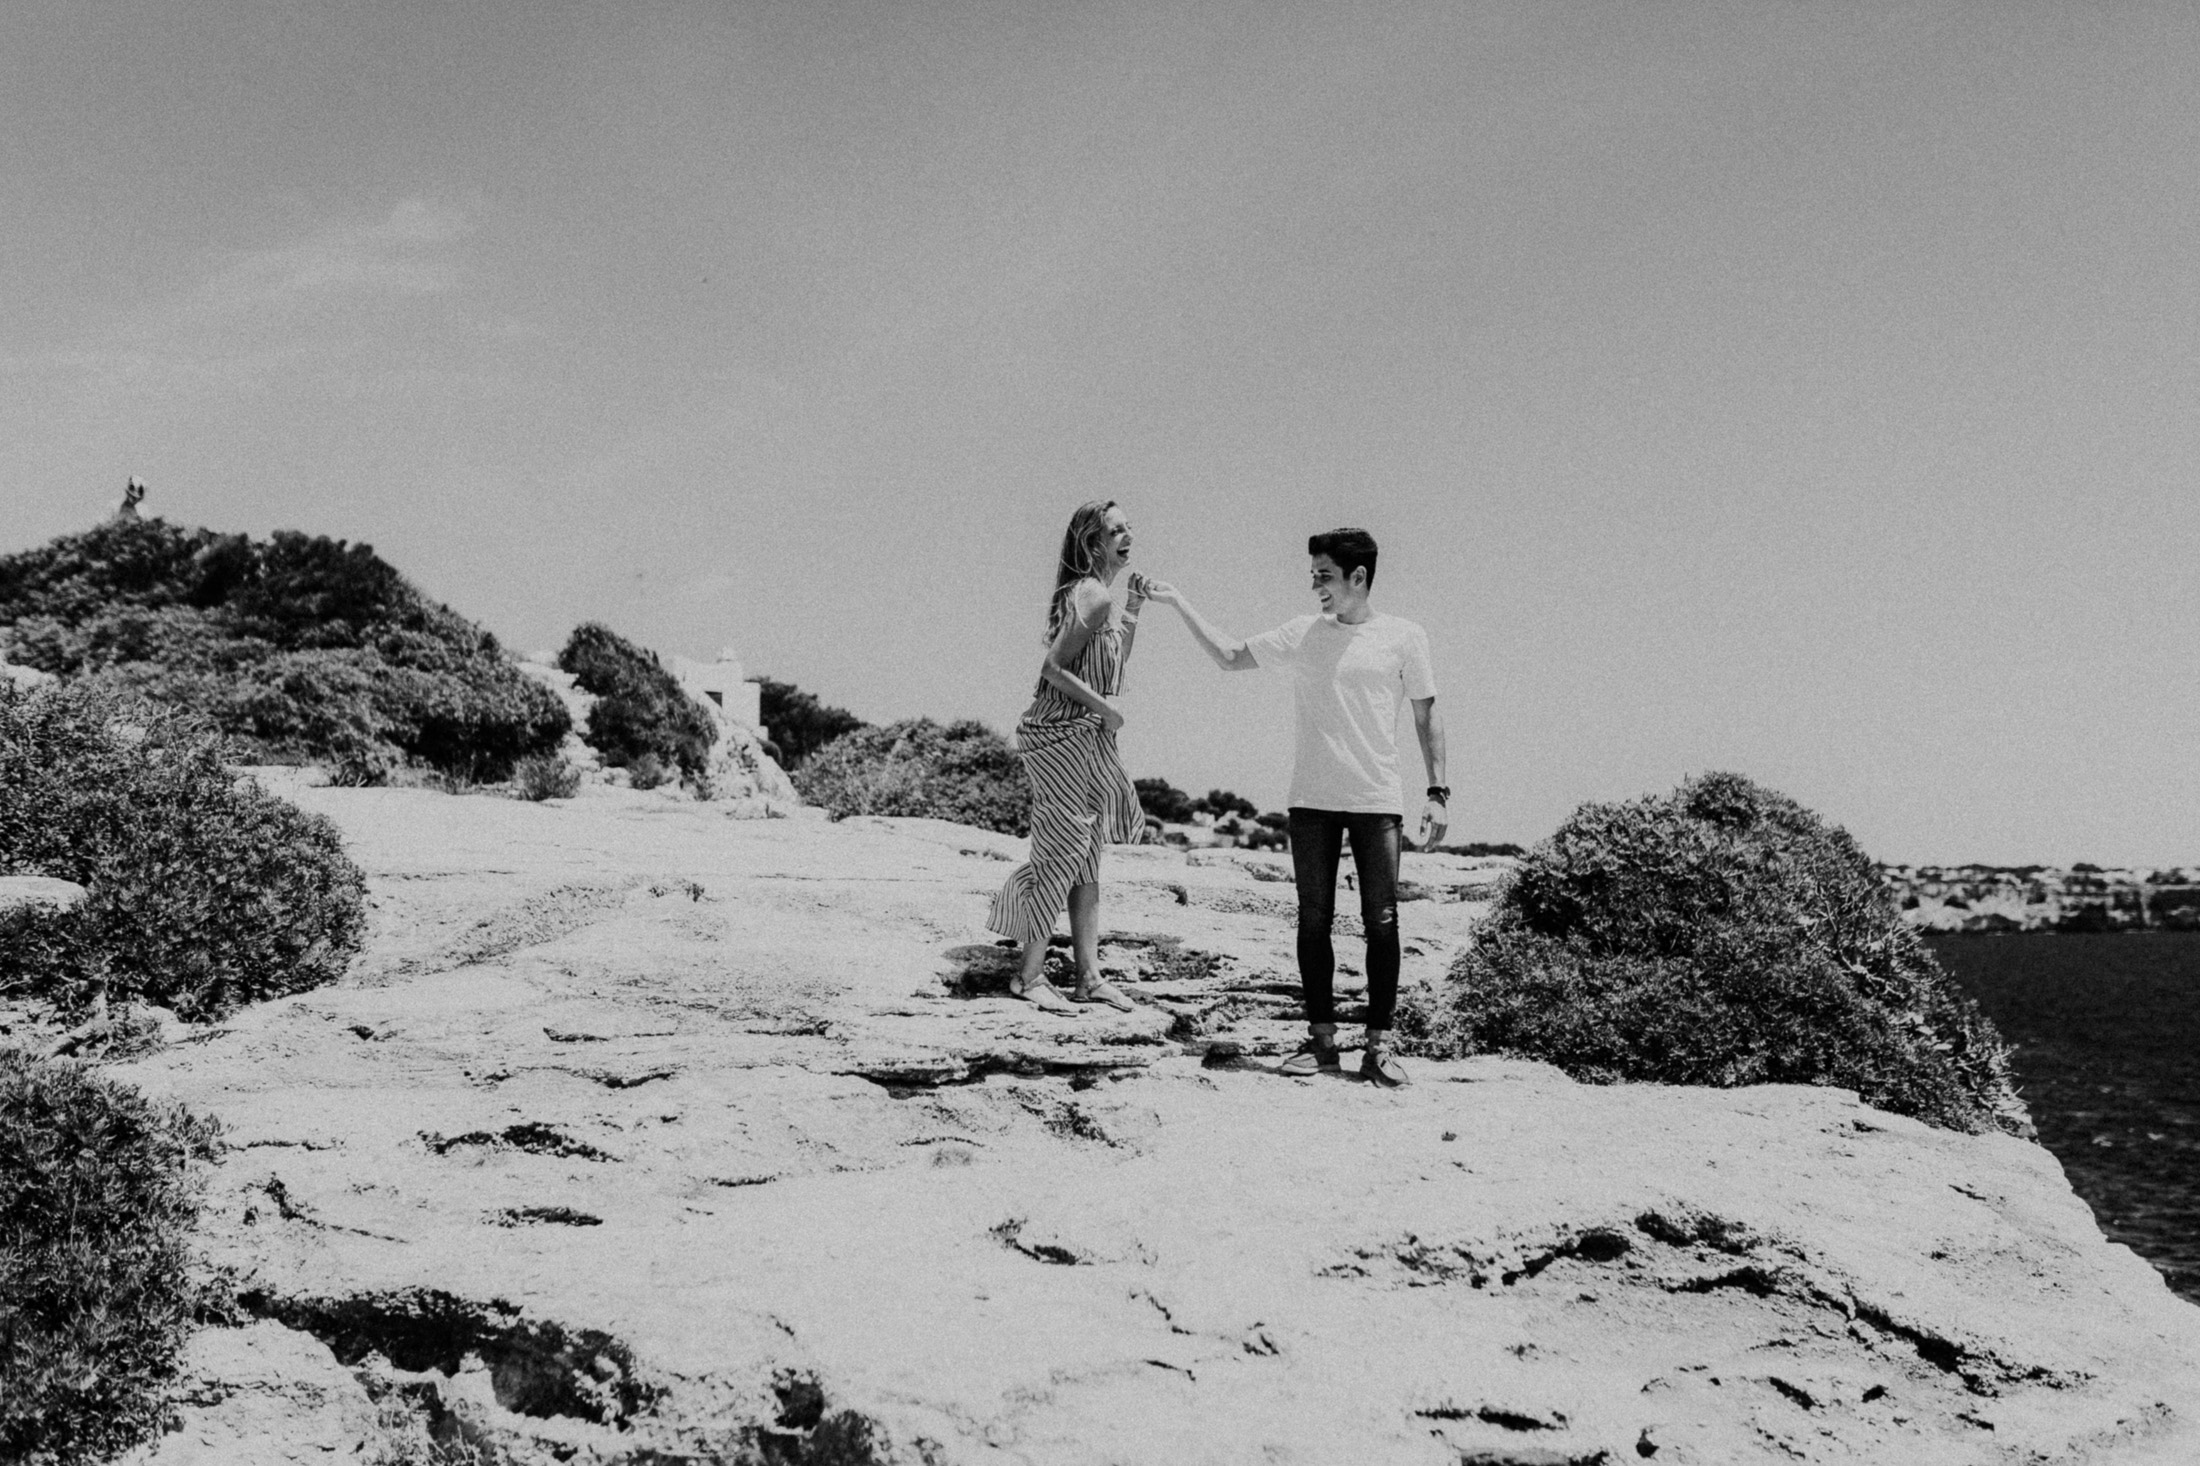 Weddingphotographer_Hochzeitsfotograf_wedding_mallorca_calapi_spain_utuskany_greece_santorini_sicilien_bavaria_bayern_austria_oesterreich_portugal_porto_algarve_deutschland_dinslaken_koeln_duesseldorf_hamburg